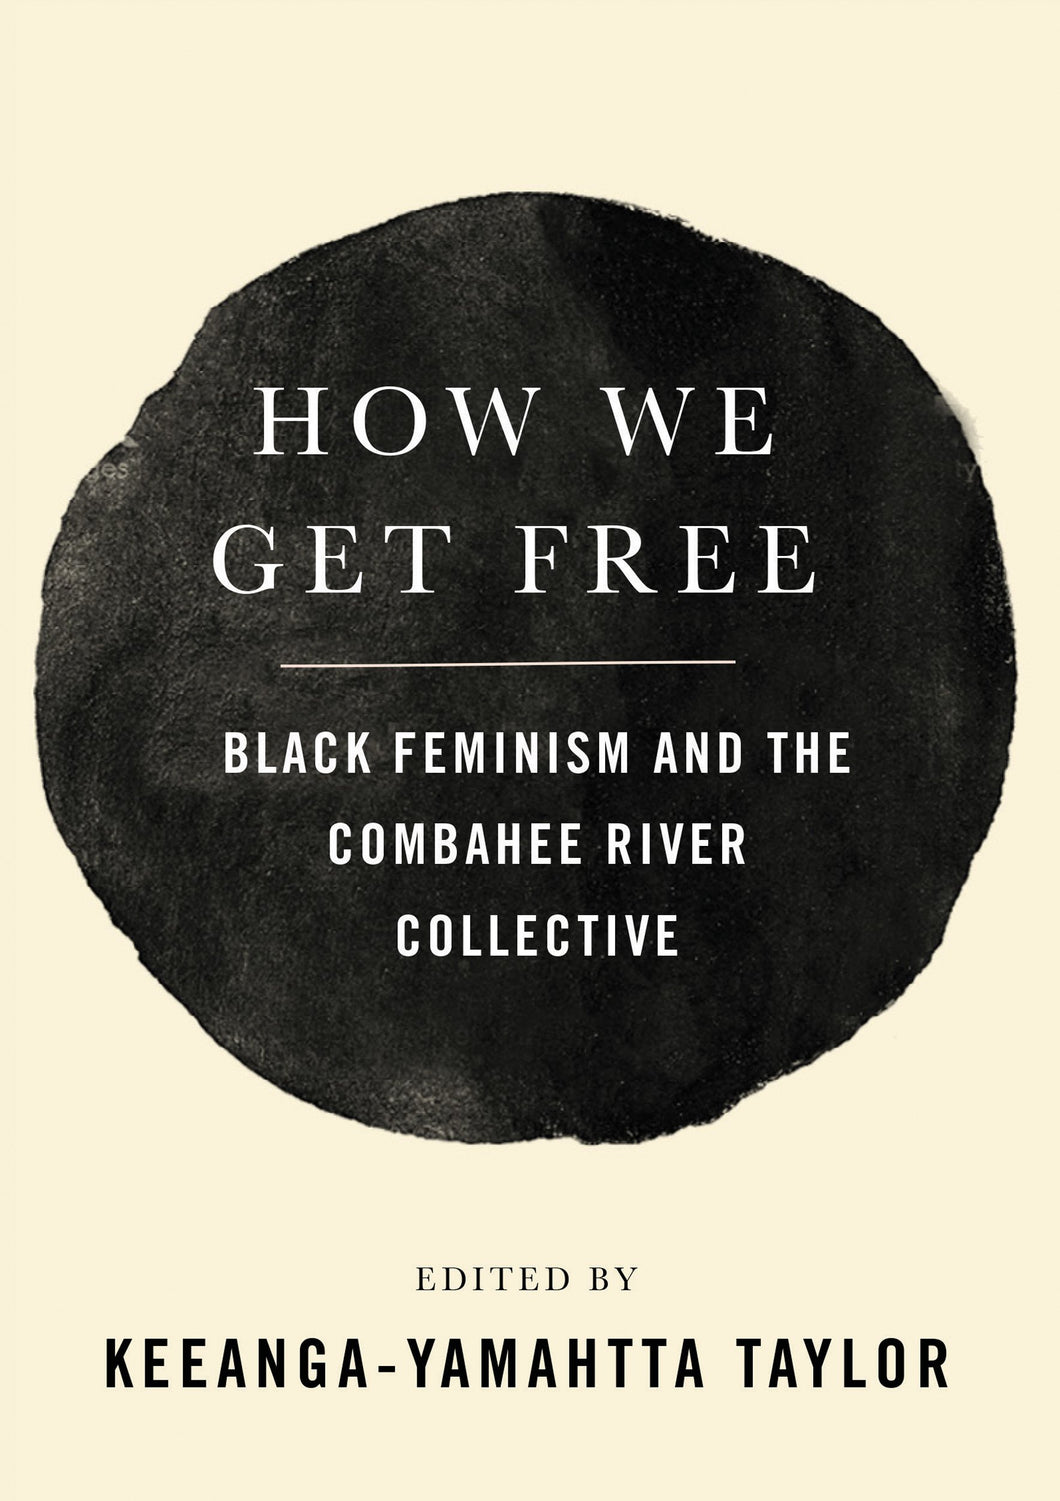 How We Get Free: Black Feminism and the Combahee River Collective by Keeanga-Yamahtta Taylor